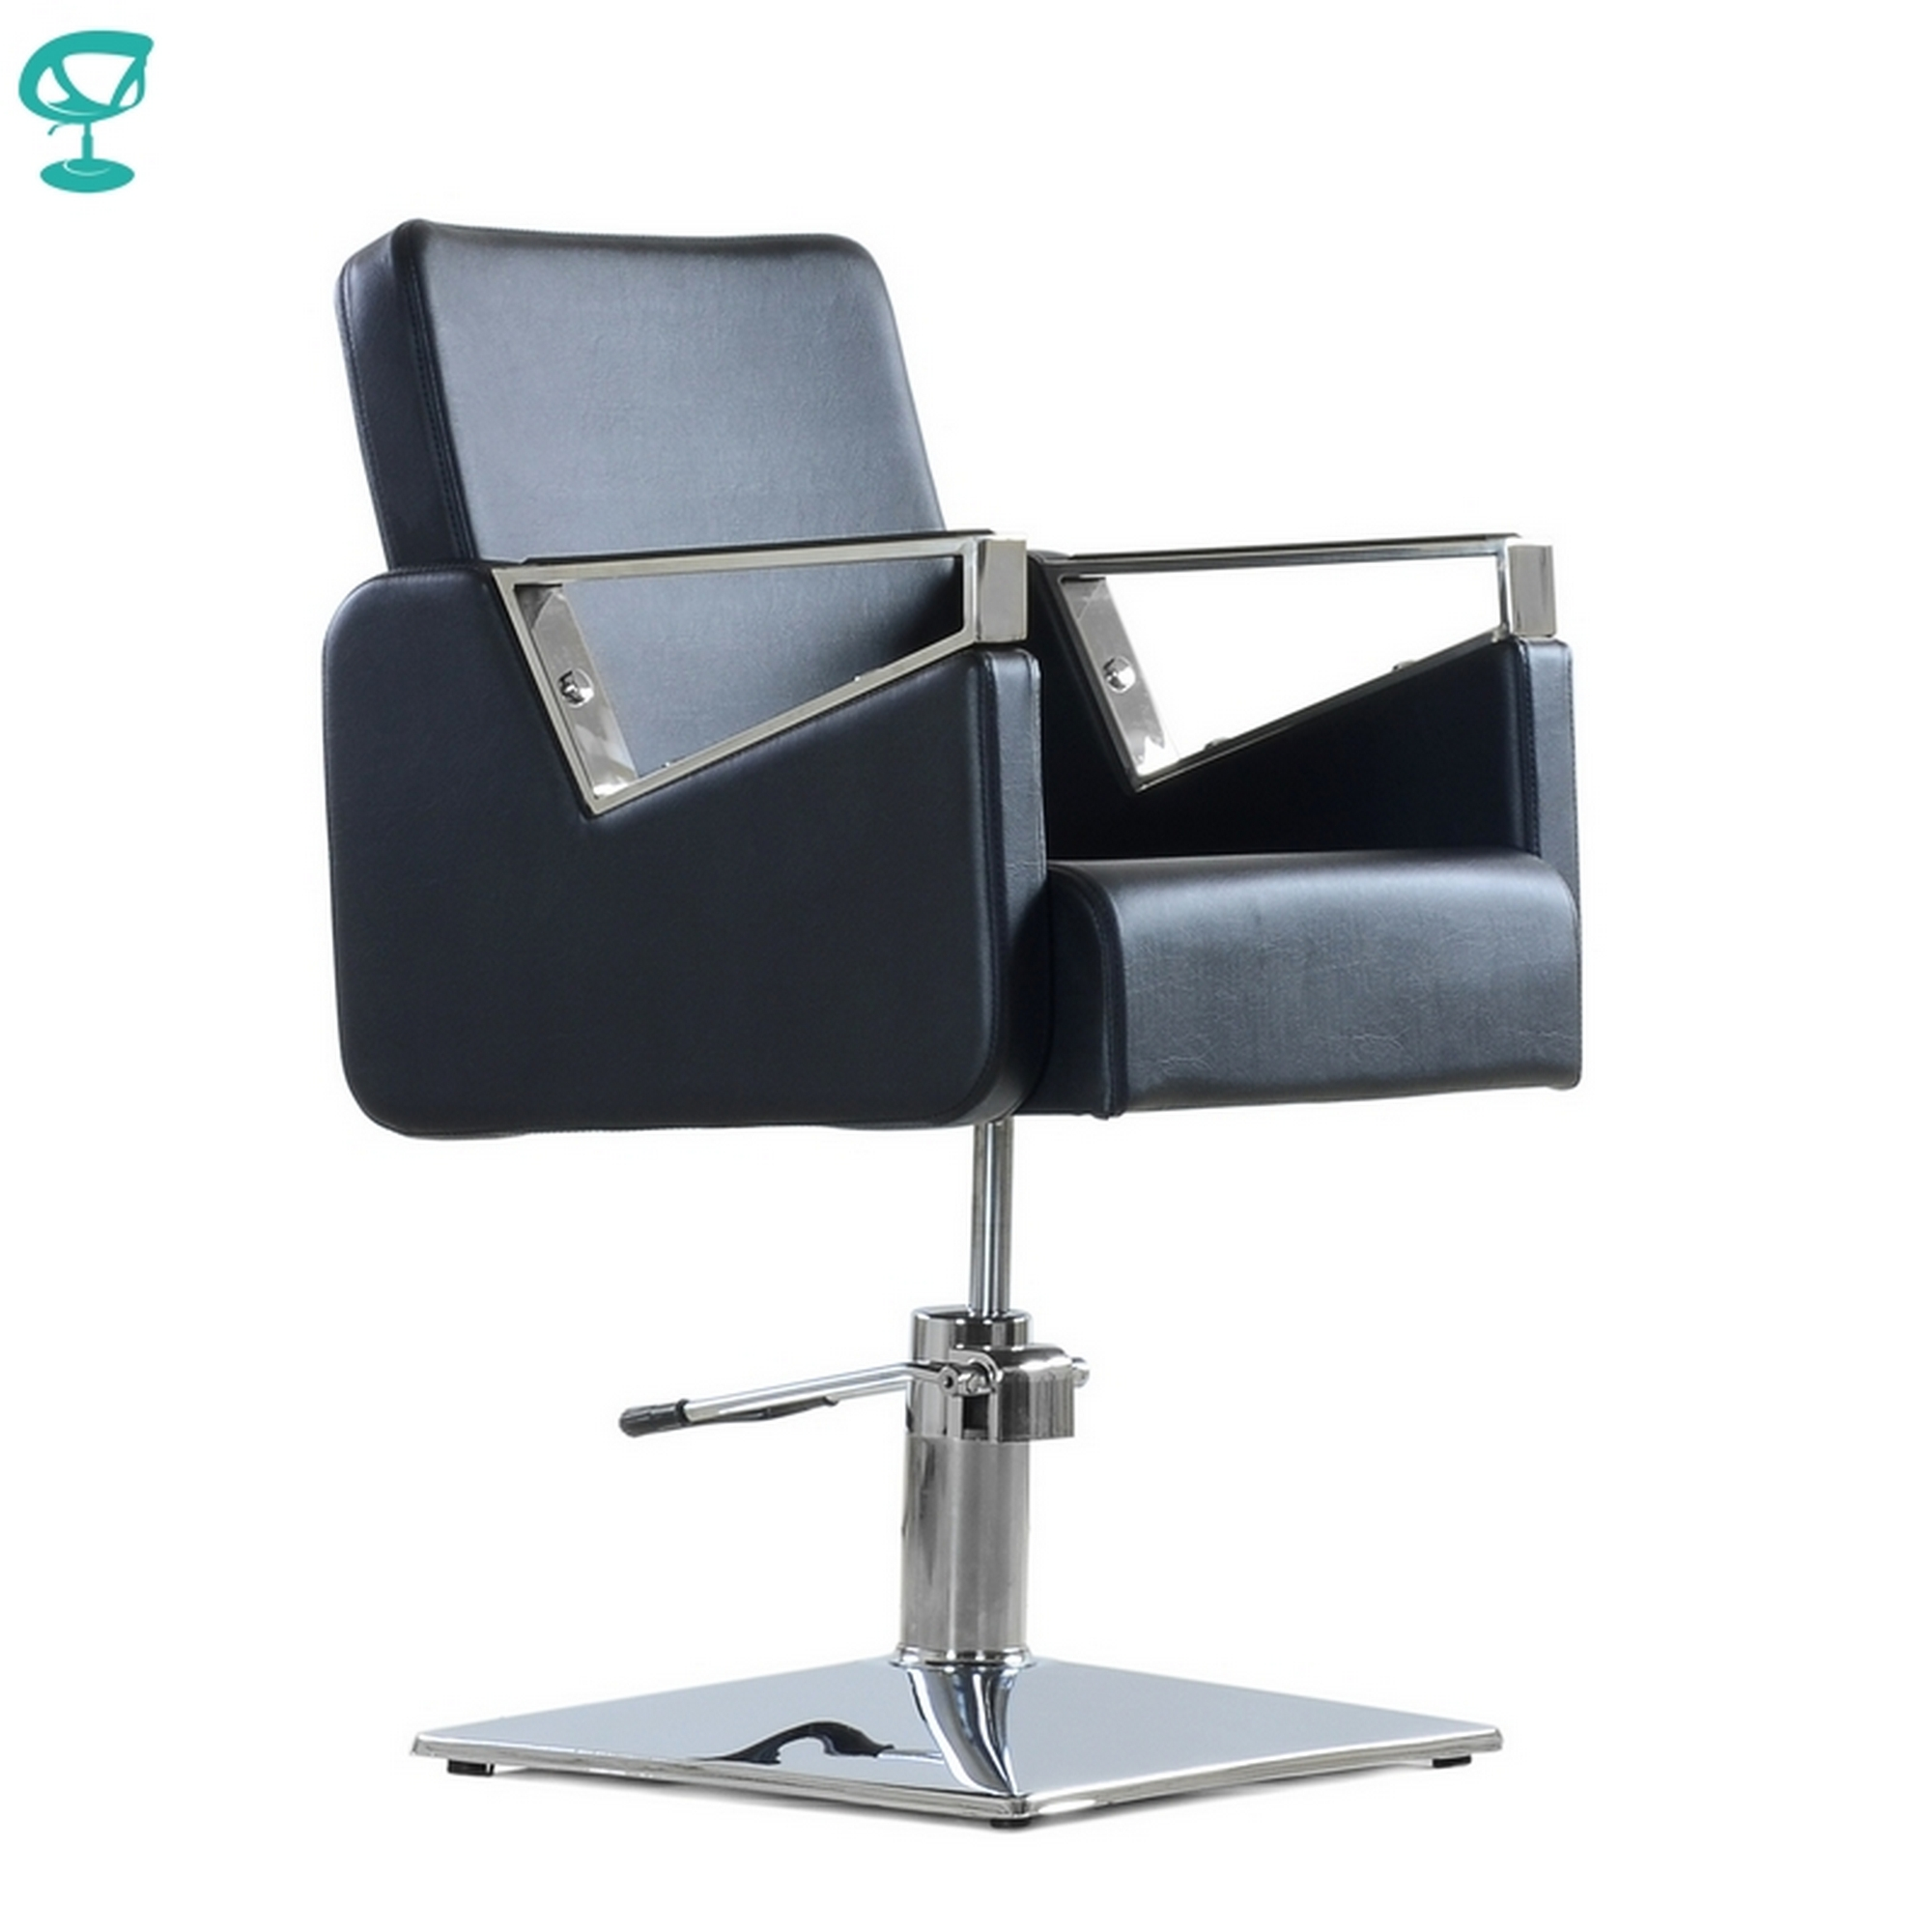 95707 Barneo 6300V5 Chair Salon Chair Black Chair барбершопа Chair Free Shipping To Russia